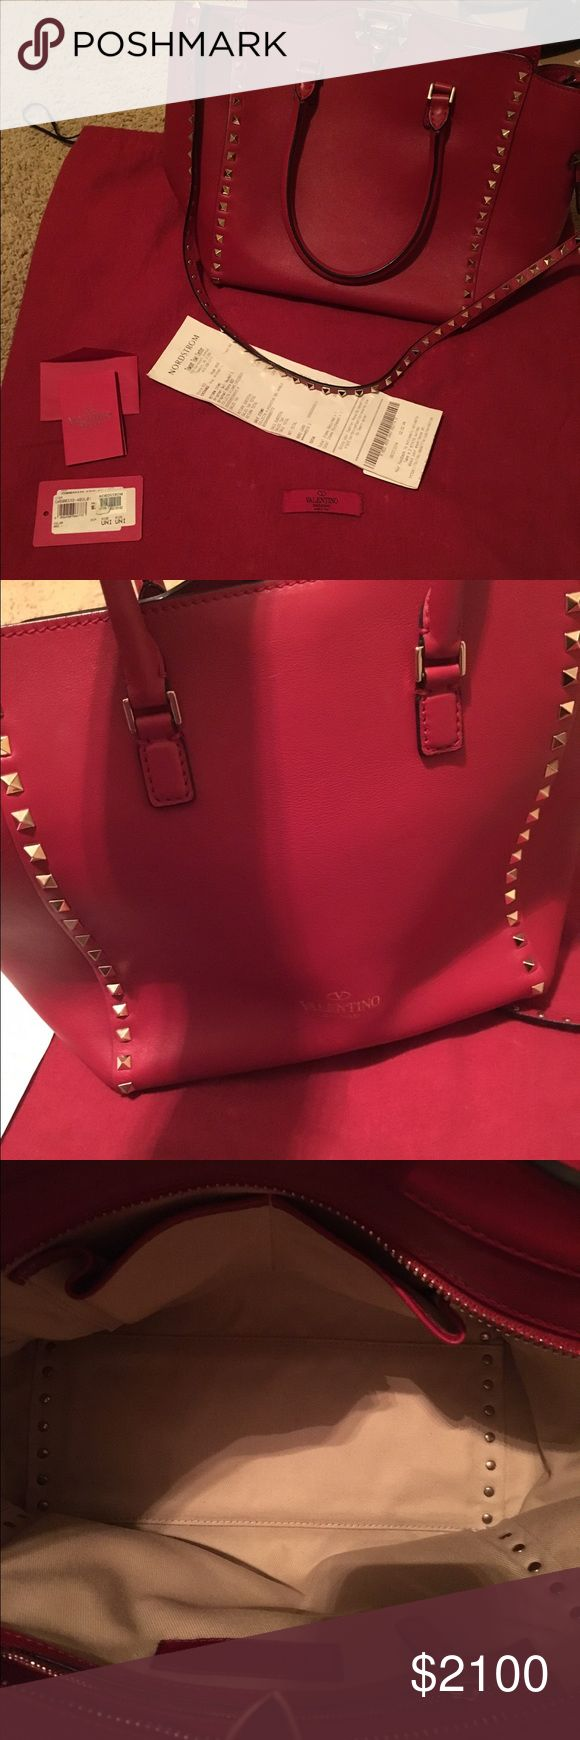 Valentino Rockstud Leather Double Handle Tote Purchased from Nordstrom. This authentic brand new Valentino bag with tags includes: proof of purchase, and dust bag! Date code: BS-G339BOL1. This pretty, Red Valentino shoulder bag is up for sale! **SORRY NO TRADES!!! Valentino Bags Shoulder Bags